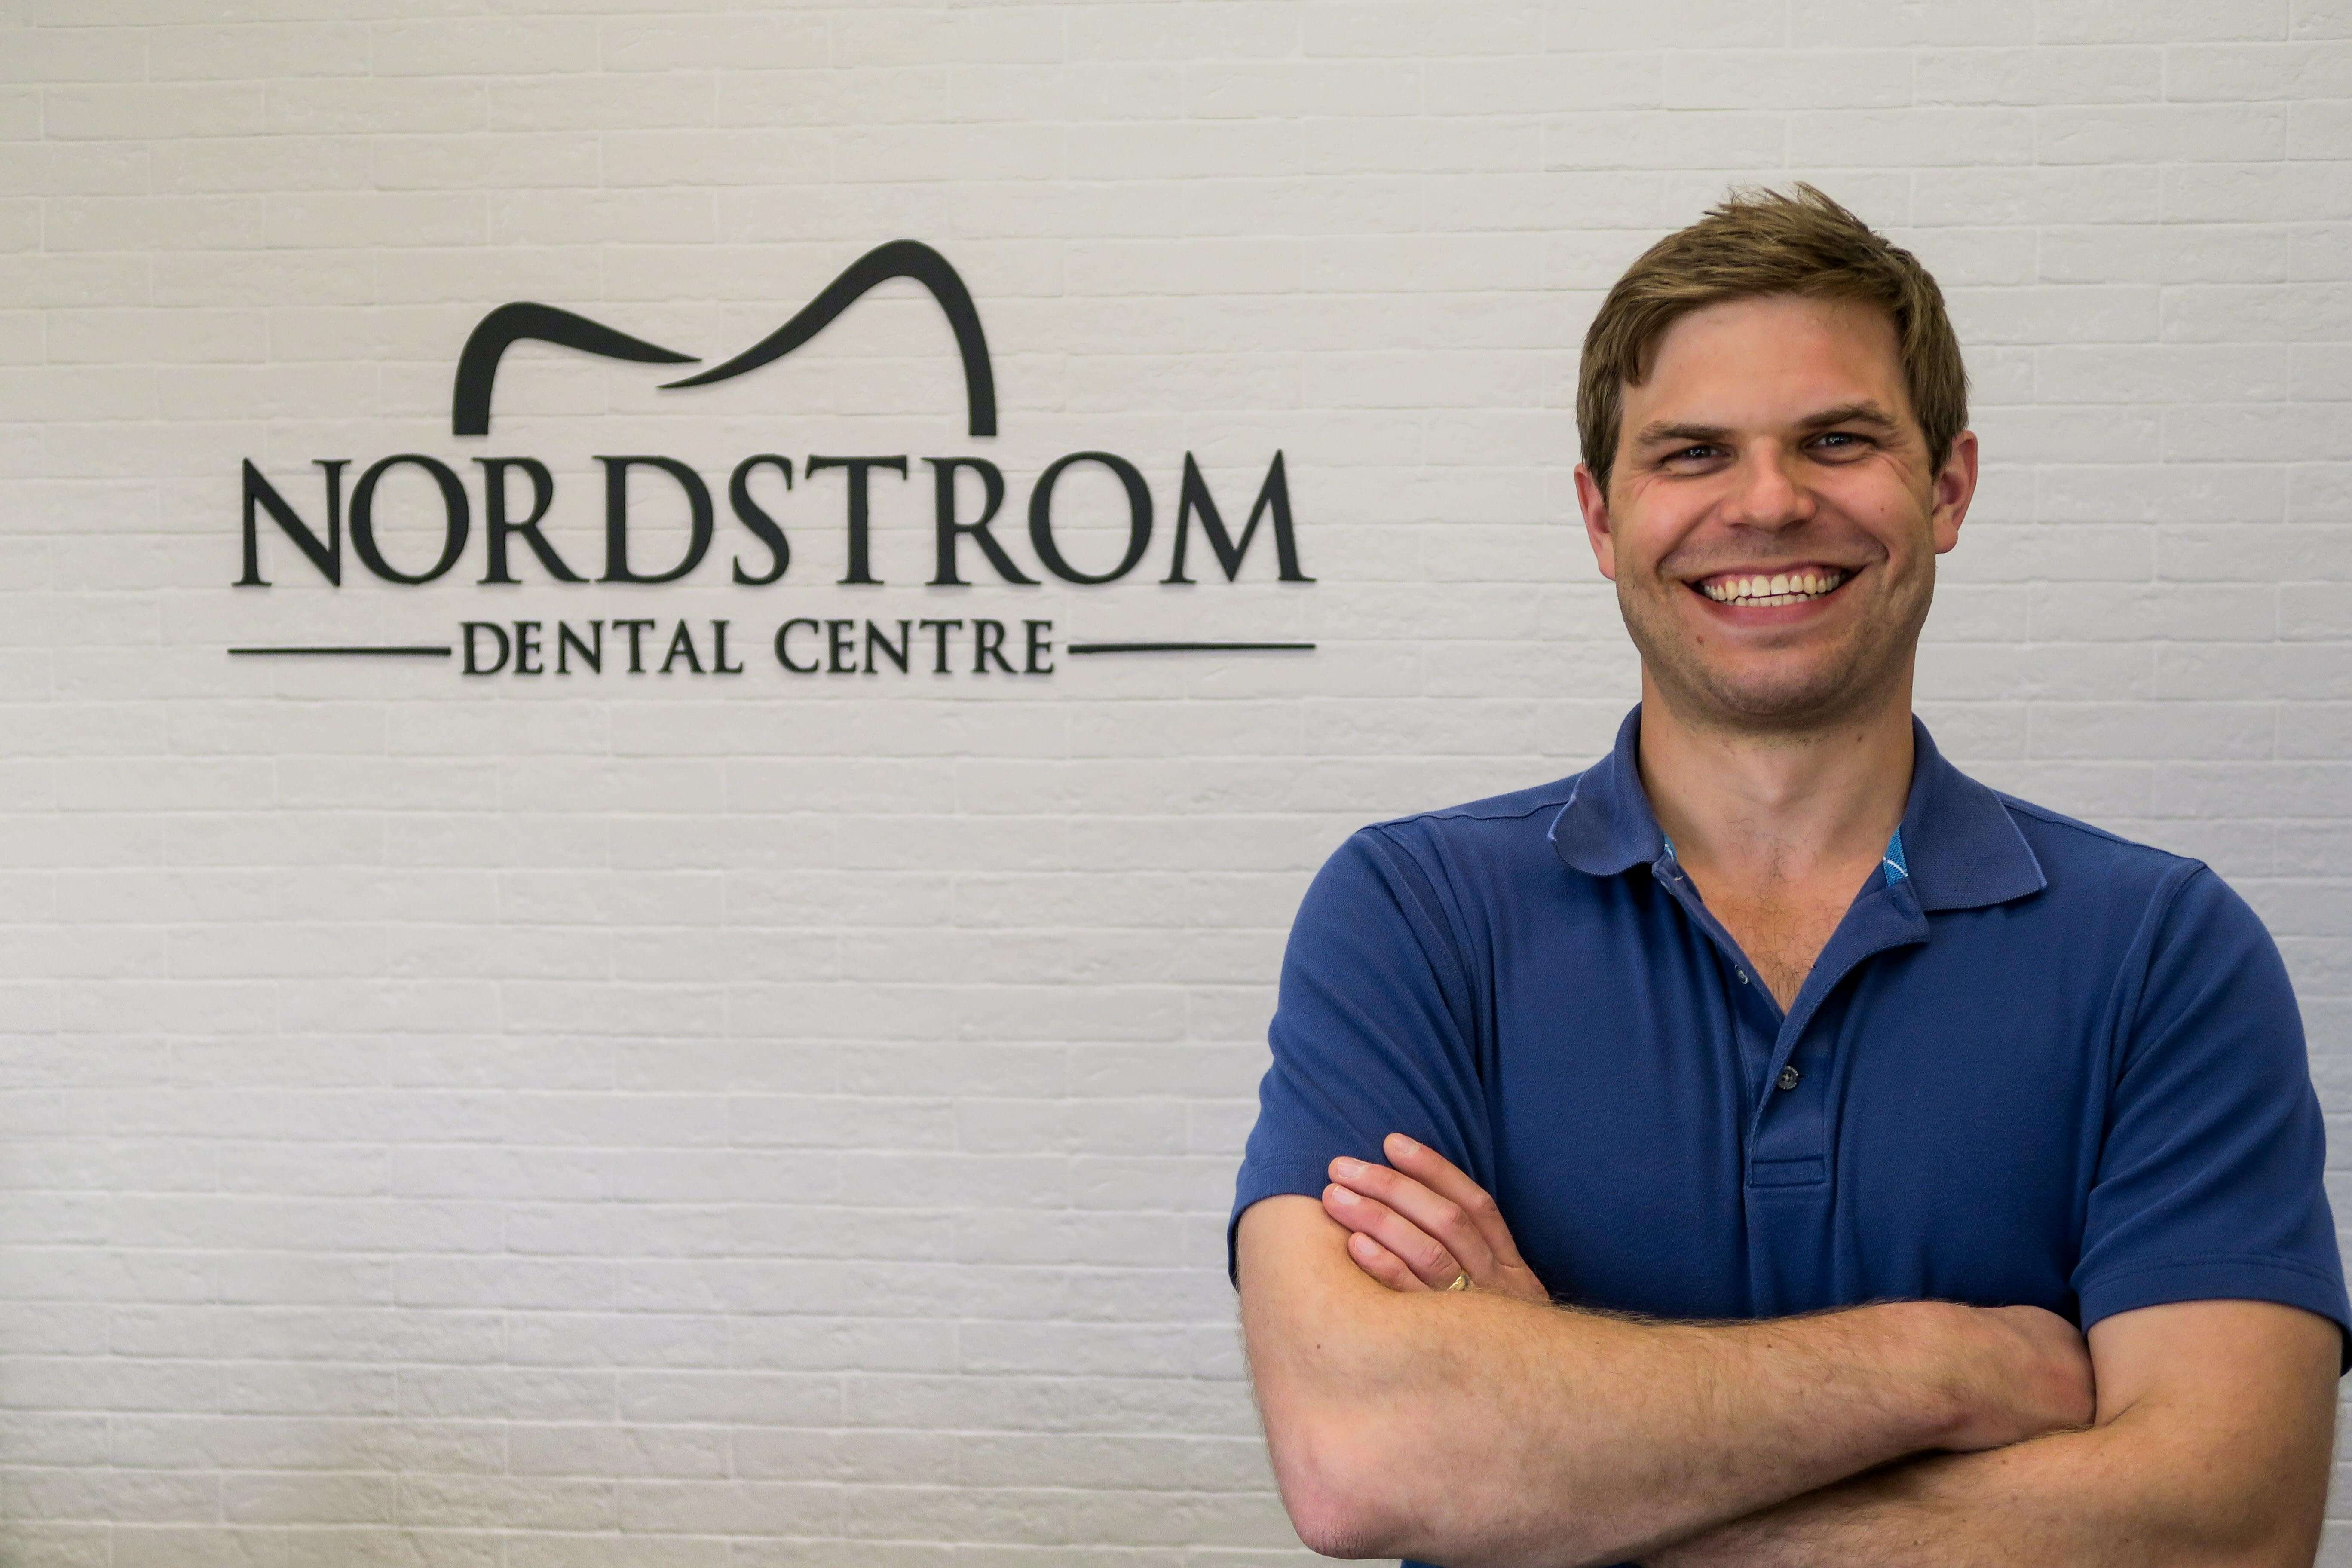 Nordstrom Dental Centre is a full-service dental practice located in the valley district of Hinton, Alberta. The practice has been owned and operated by Dr. Travis Nordstrom and his wife Marina, a Registered Dental Hygienist, since May of 2014.